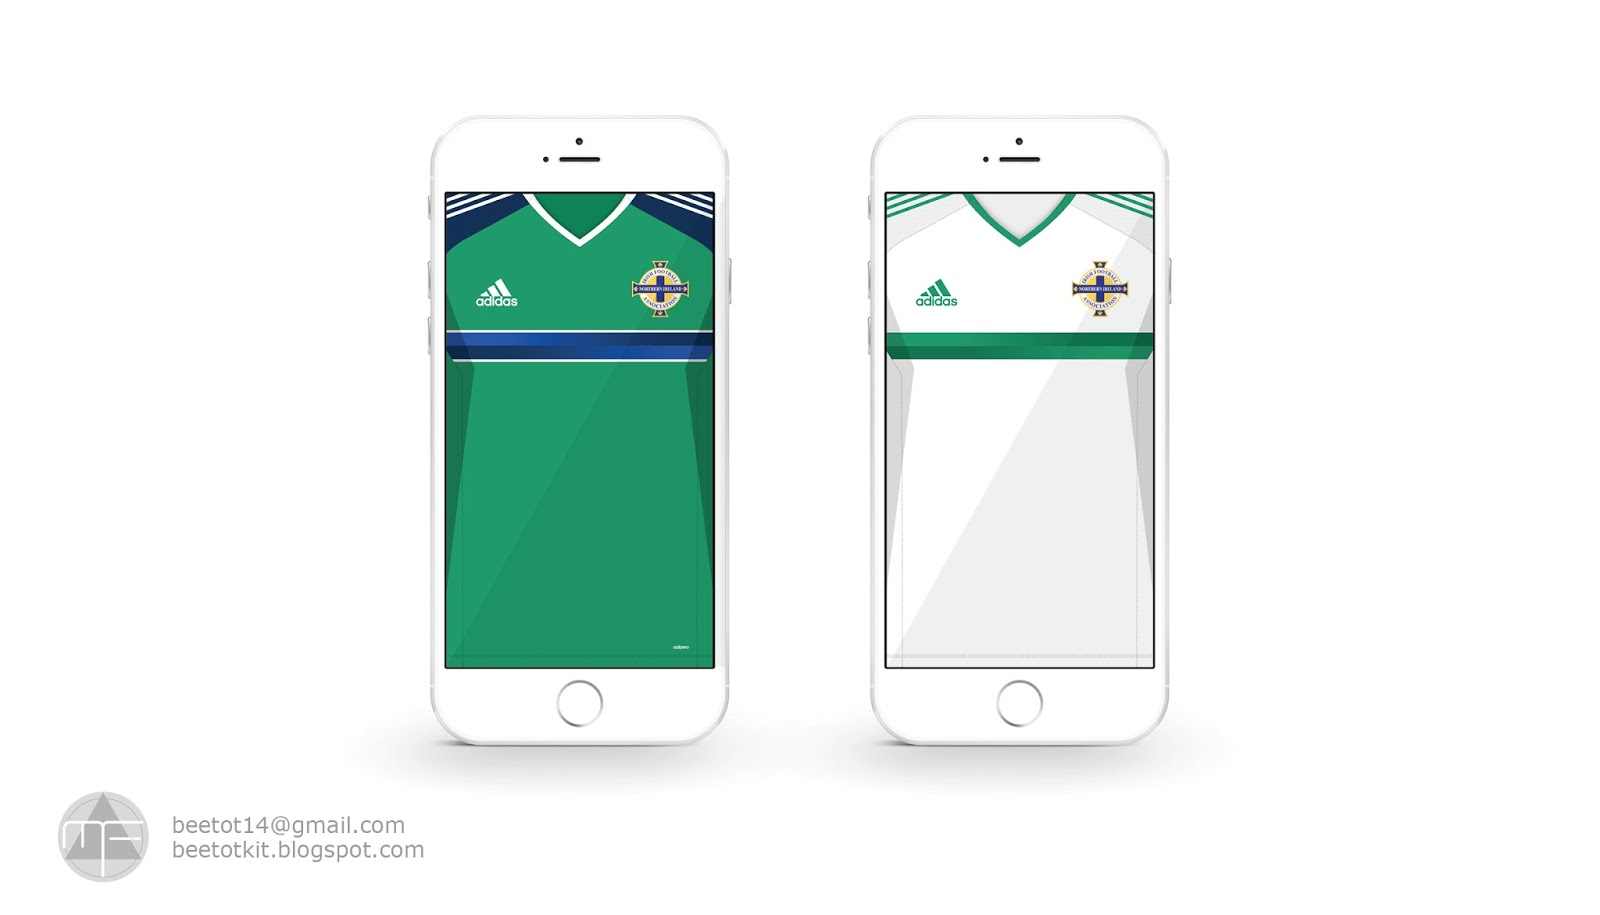 Beetot Kit: Northern Ireland Kit Euro 2016 Iphone 6 Wallpaper